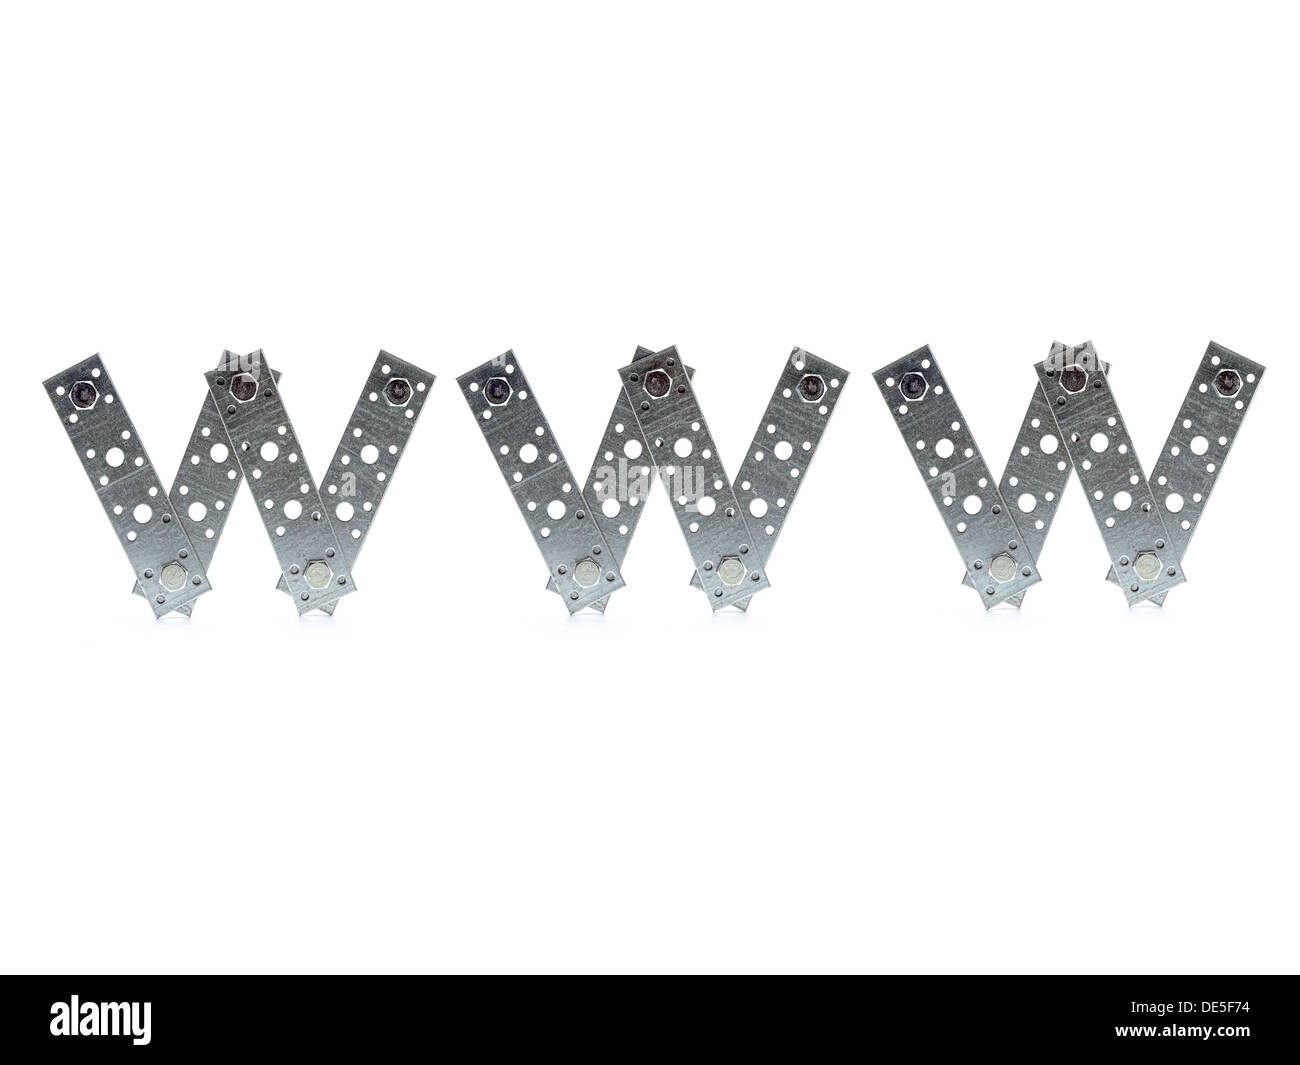 WWW acronym made from bolted metal flat bars over white background - Stock Image